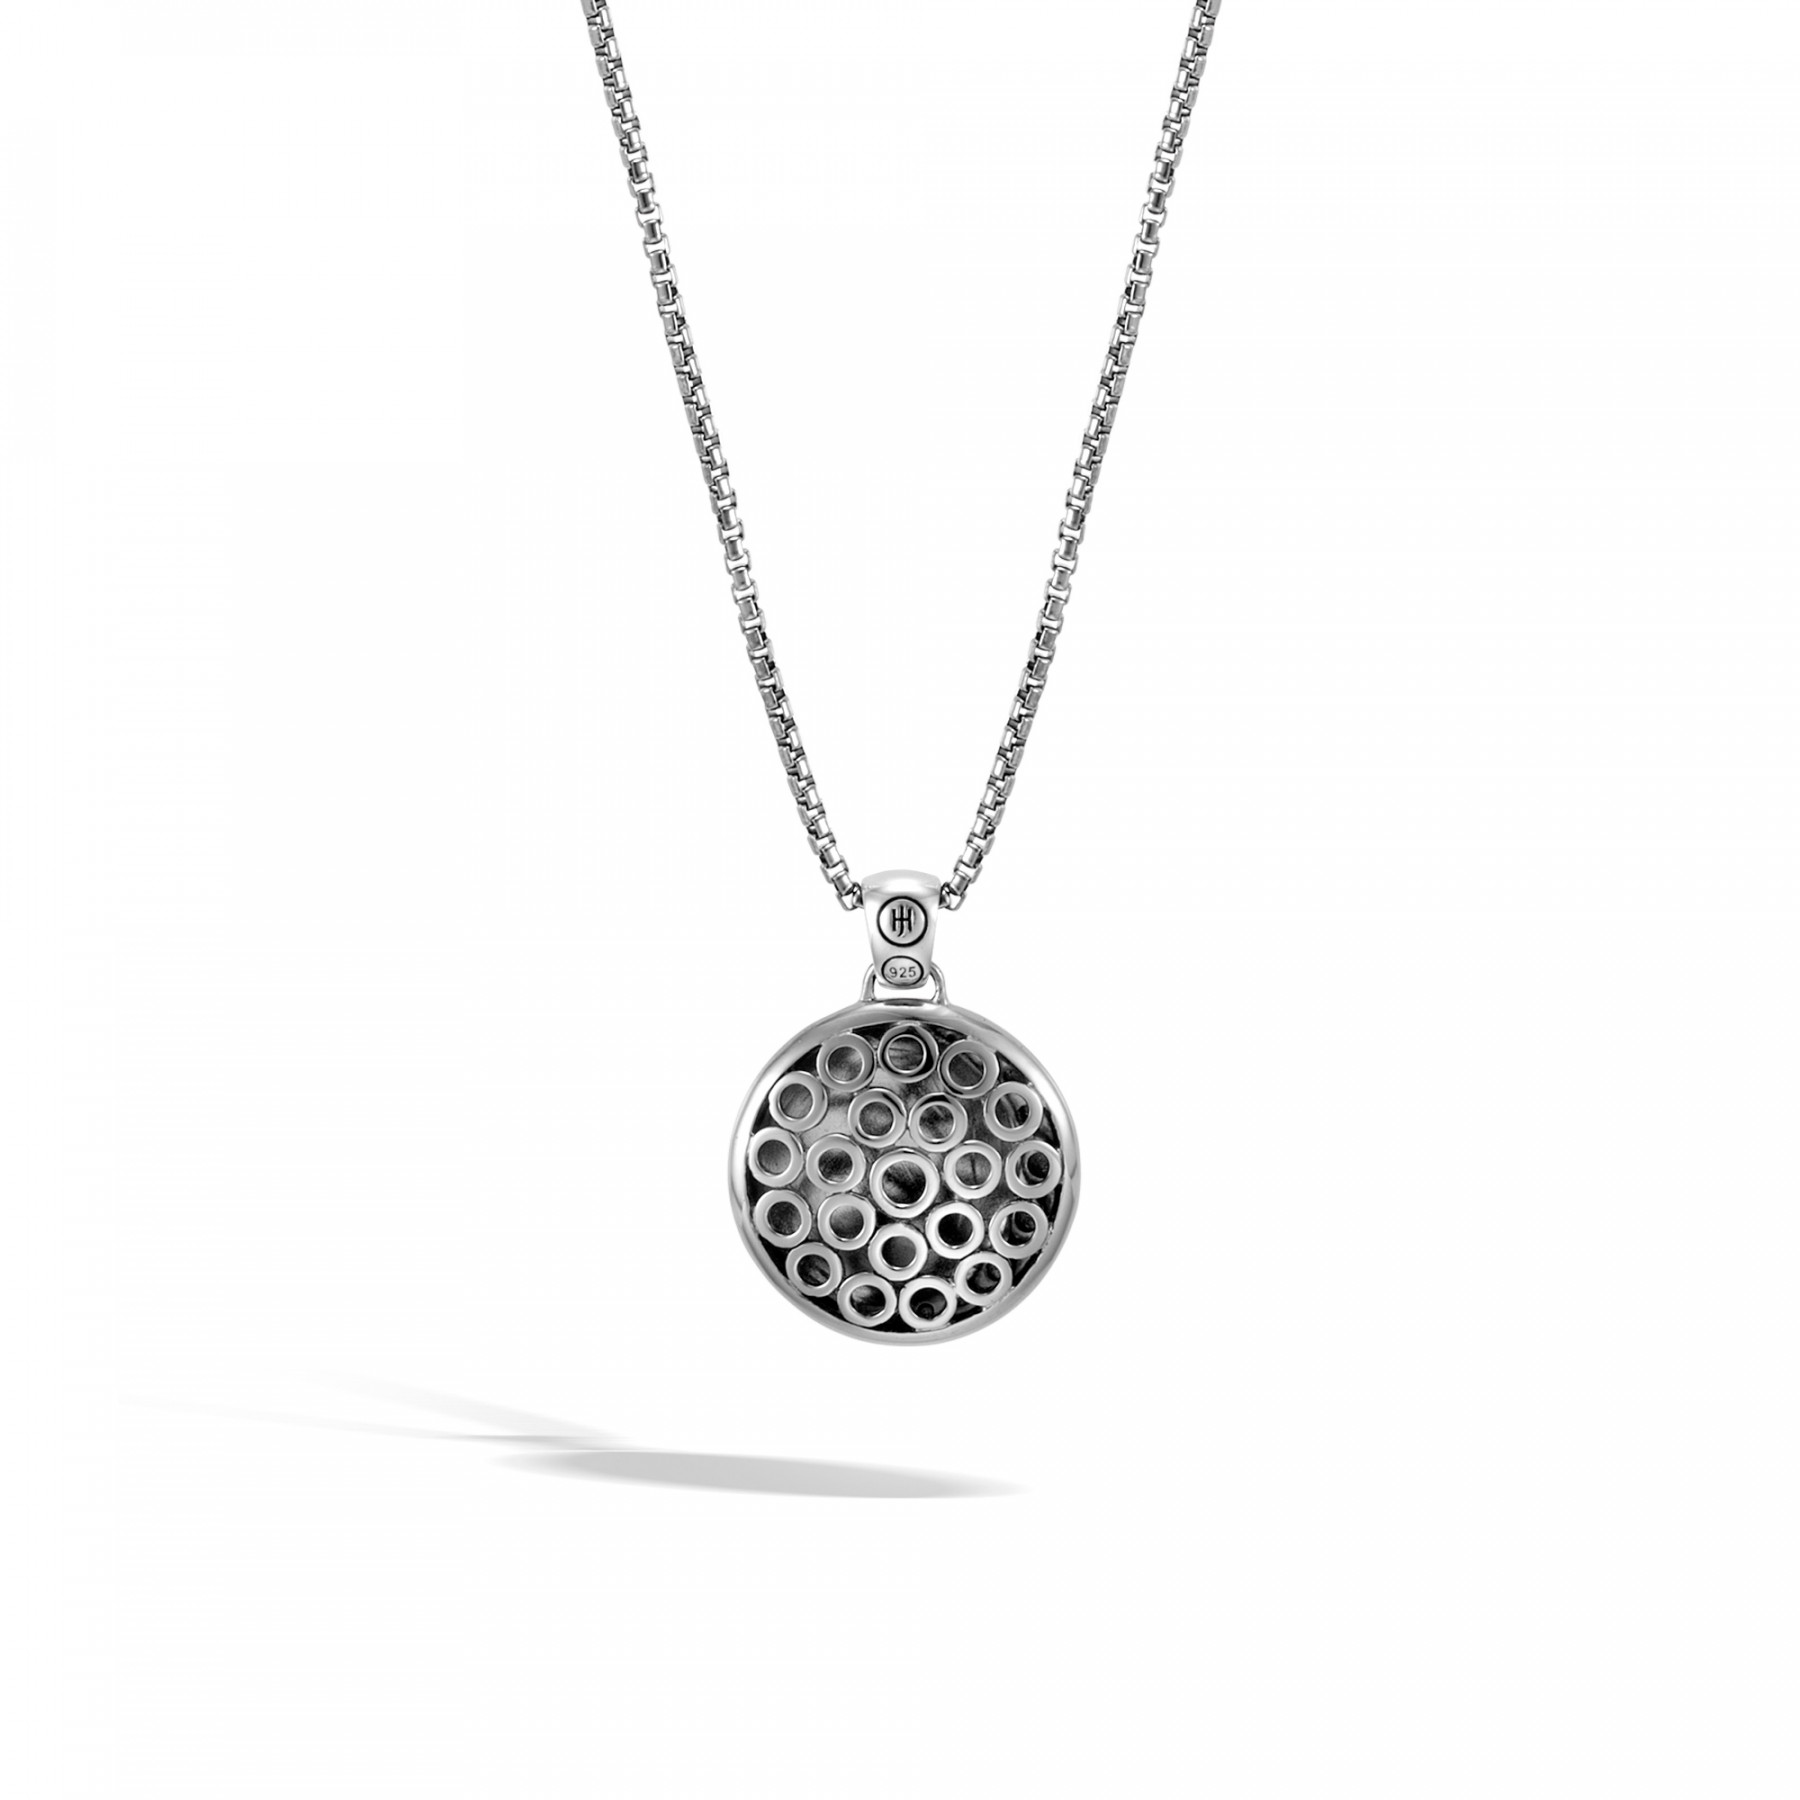 John Hardy Dot Moon Phase Necklace back view